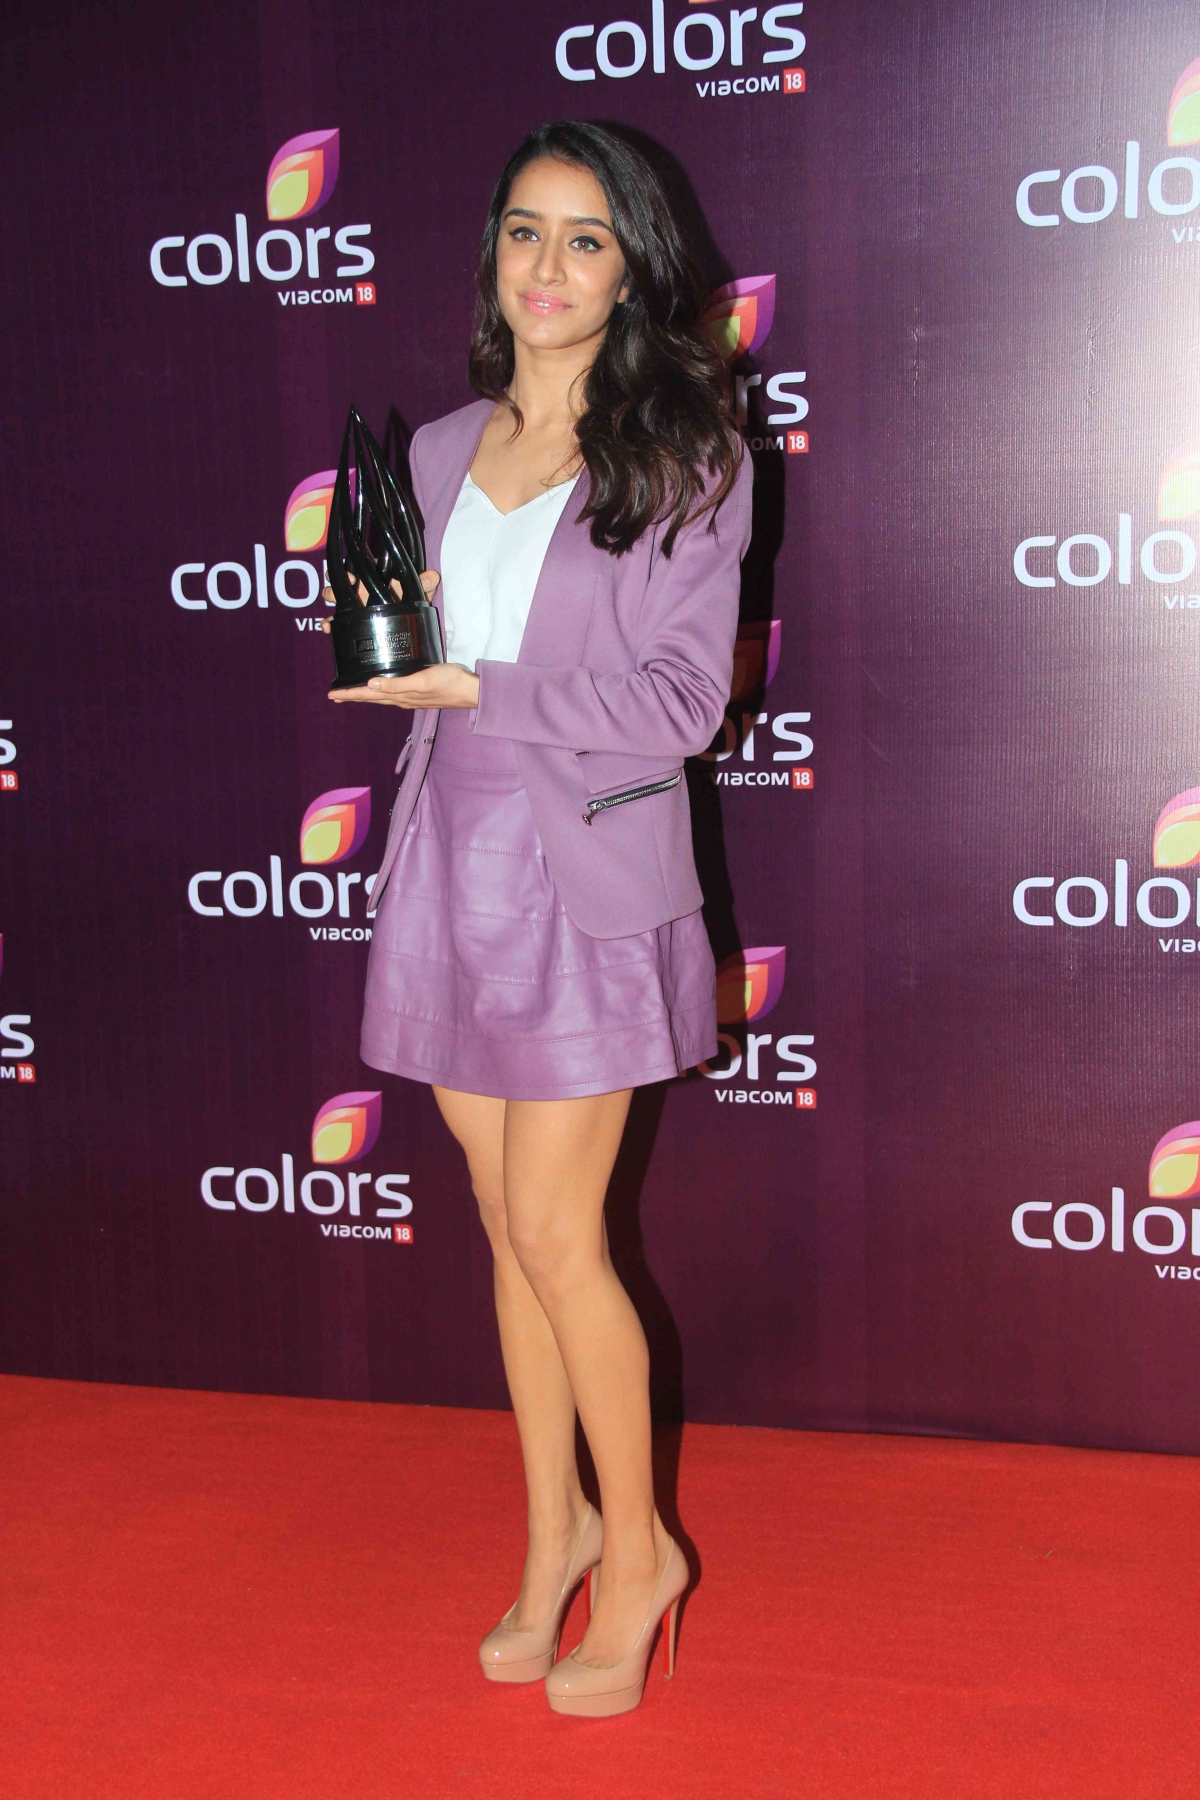 Shraddha Kapoor Wins the Brand Visionary of the Year 2015 Award |  BollySpice.com – The latest movies, interviews in Bollywood